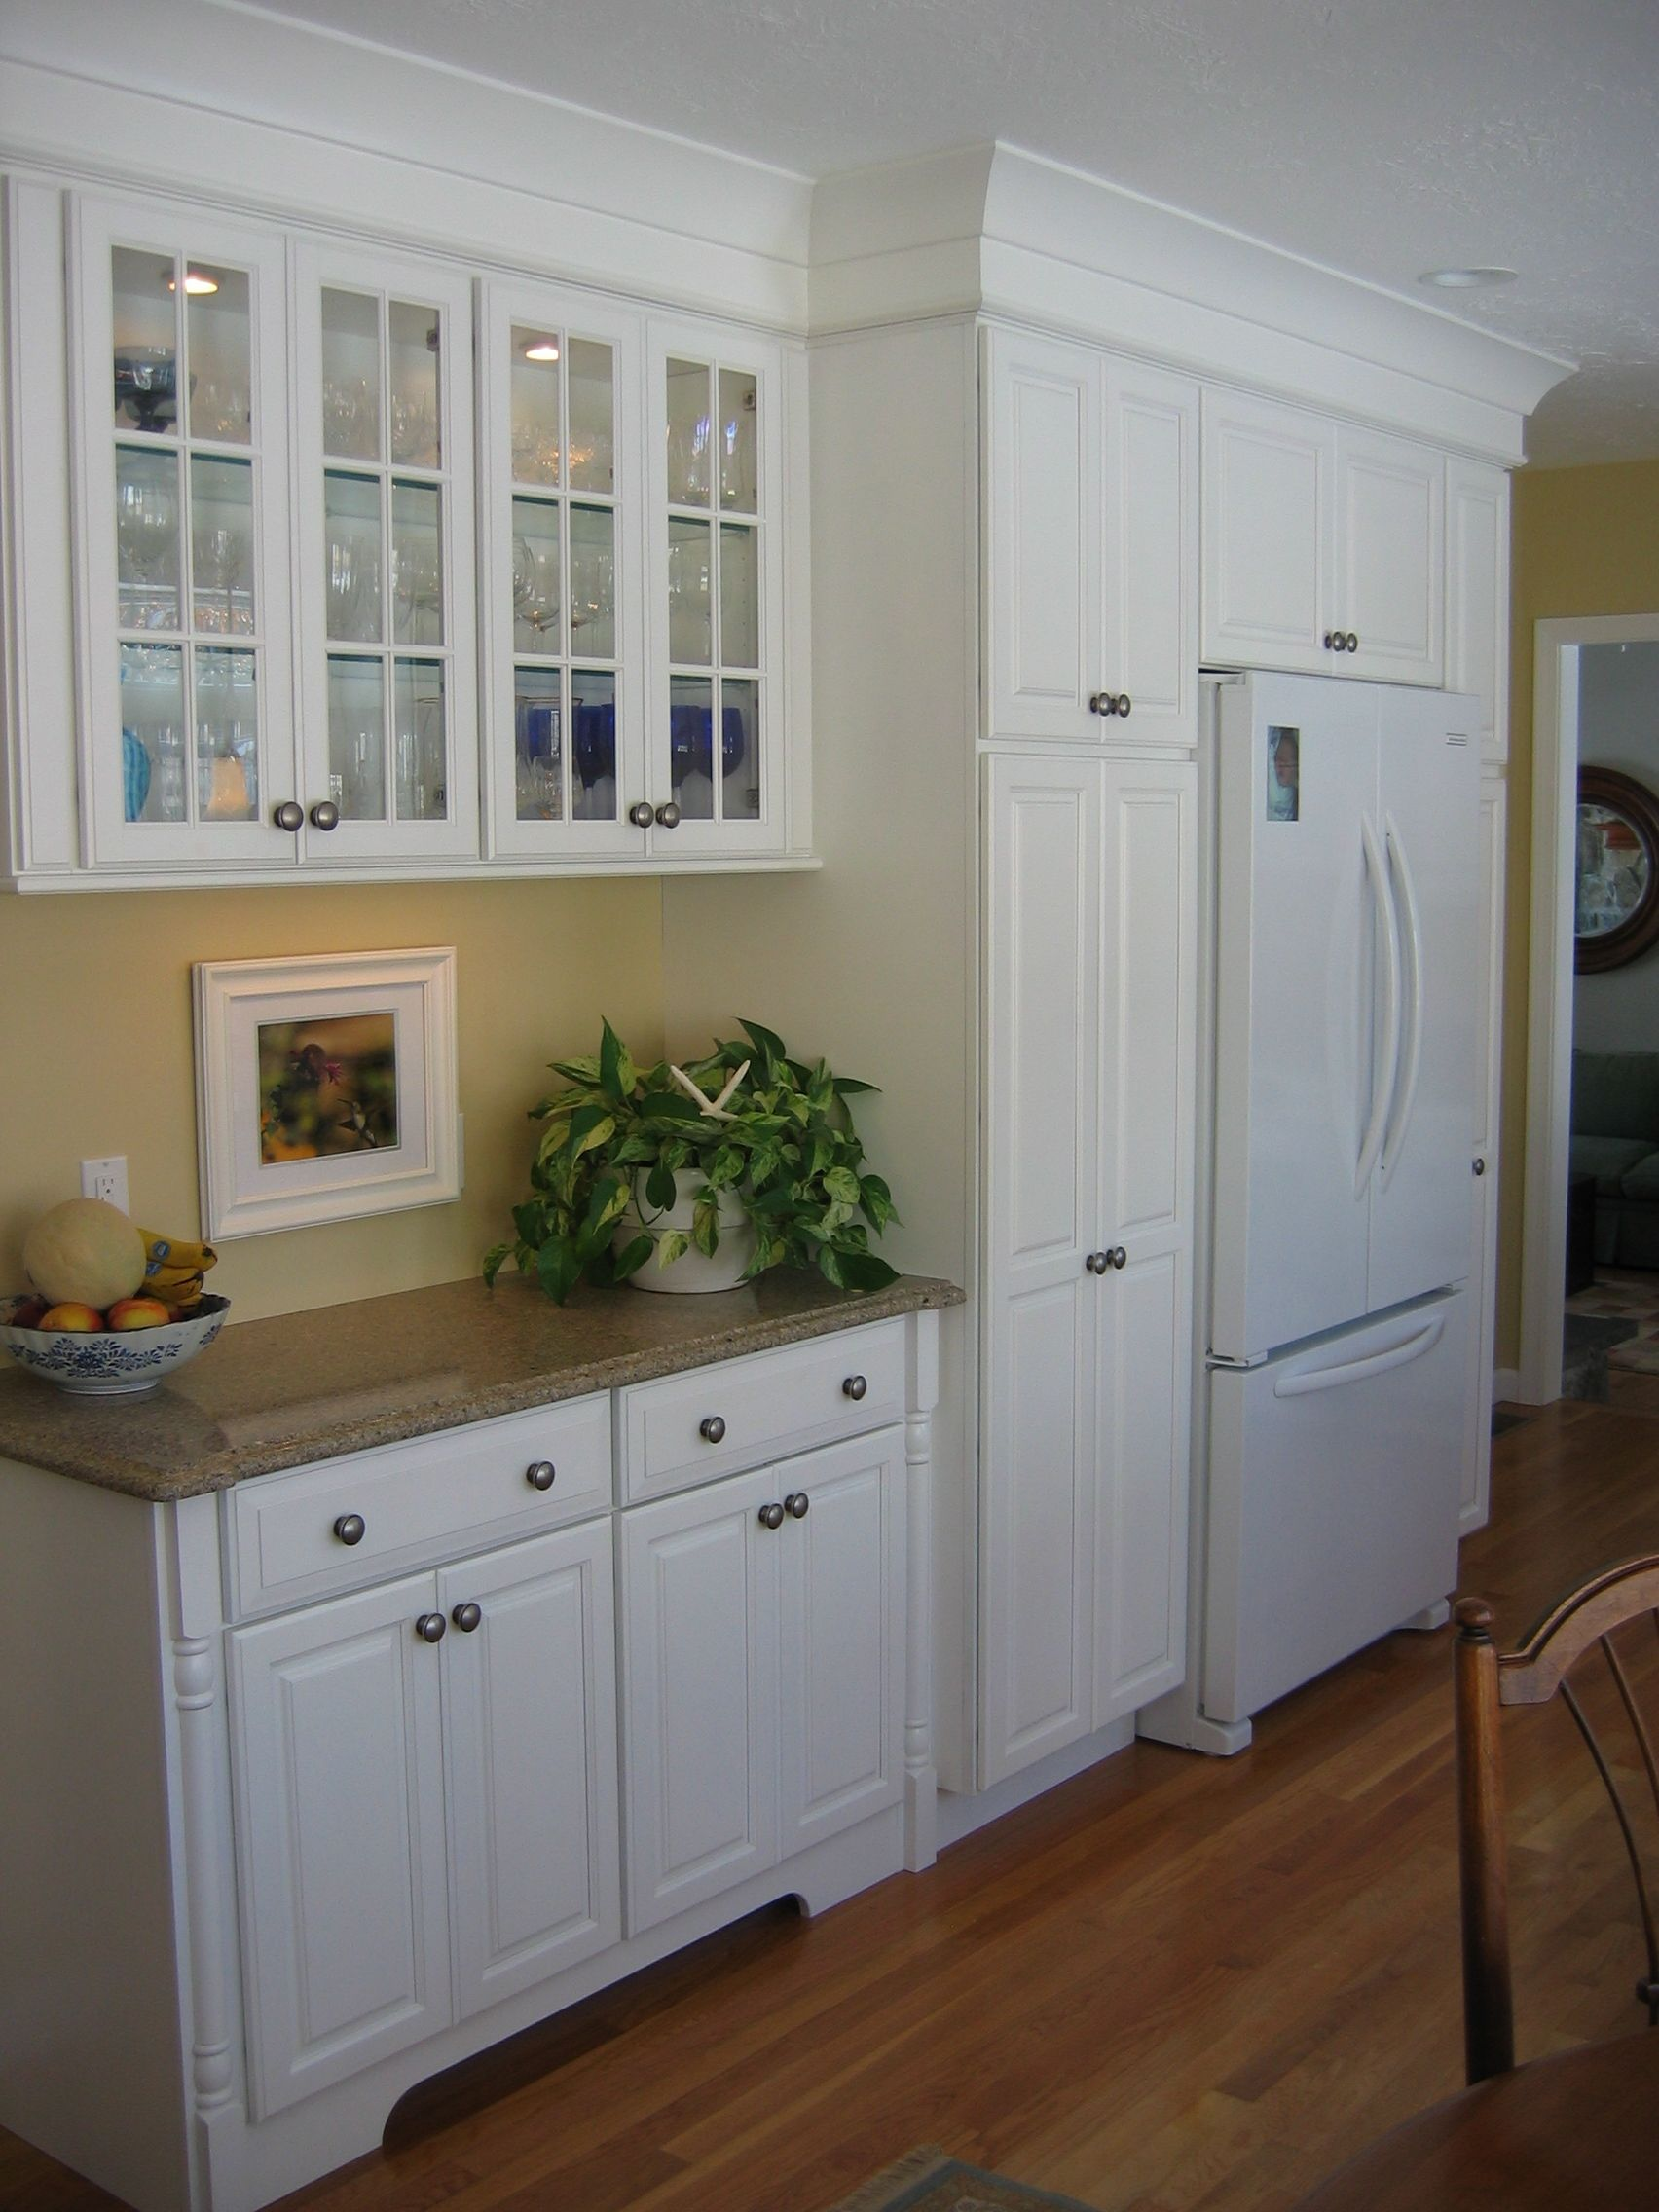 Kemper Cabinetry With Provence Arch Door Style And Maple With Dove White Finish The Countertop Is Quartz Toasted Kitchen Remodel Small Kitchen Design Kitchen